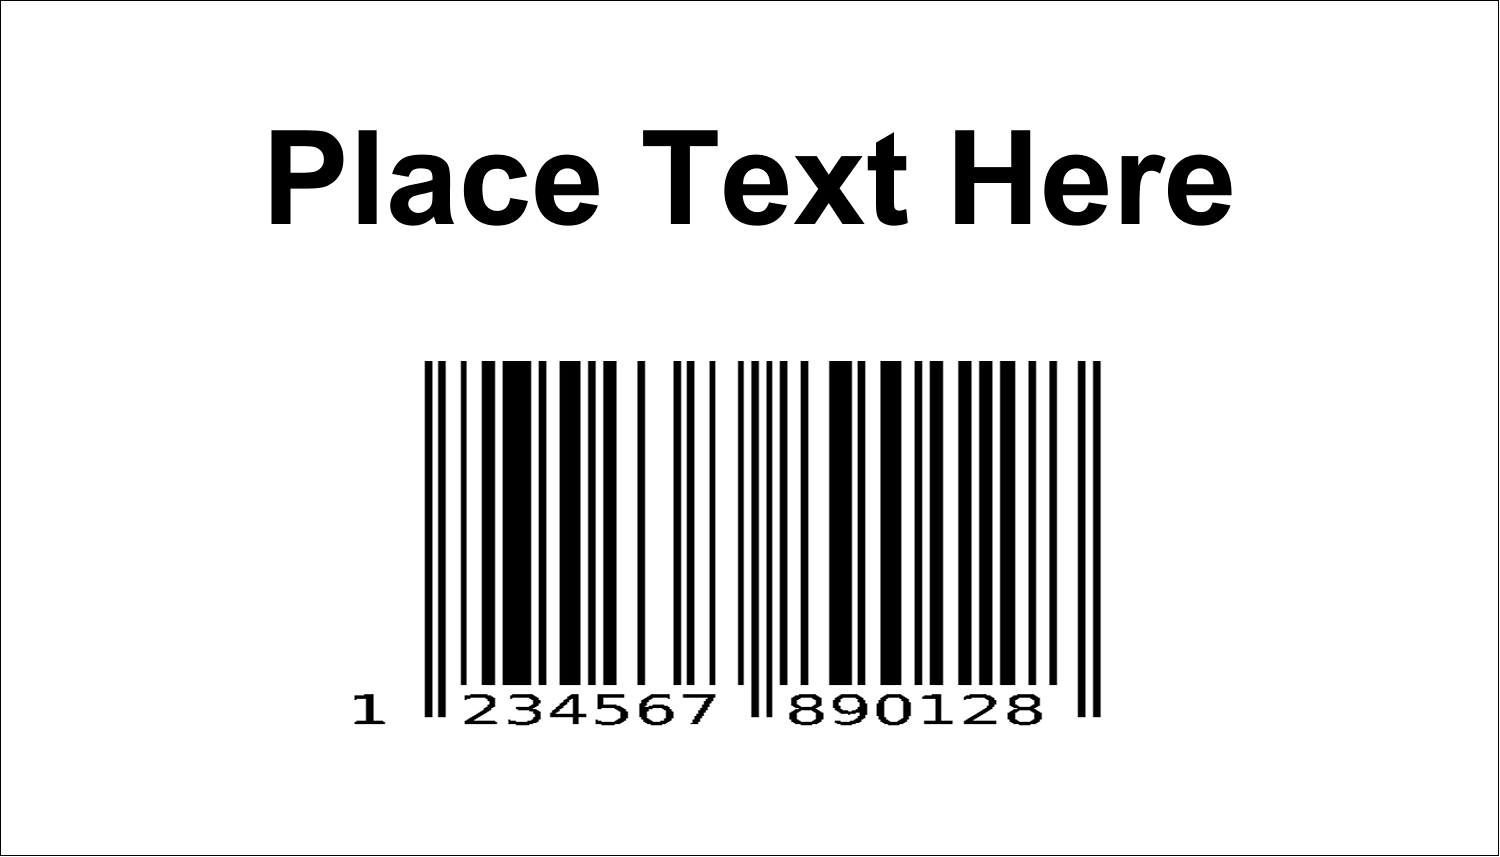 Promote smooth efficiency with help from pre-designed Bin Barcode templates.